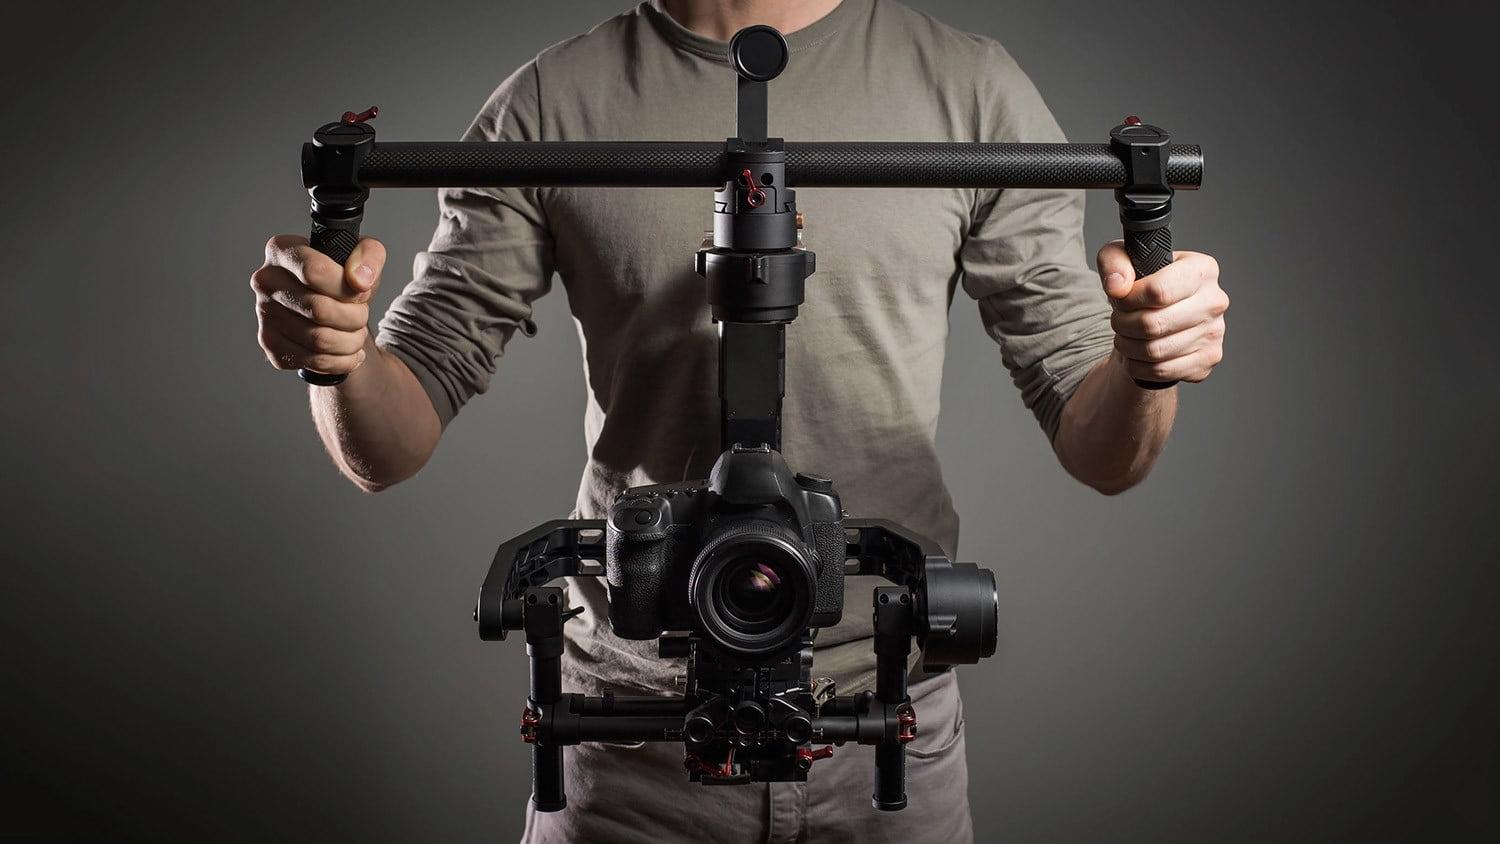 How to Build a DIY Camera Gimbal For Your DSLR | Digital Trends